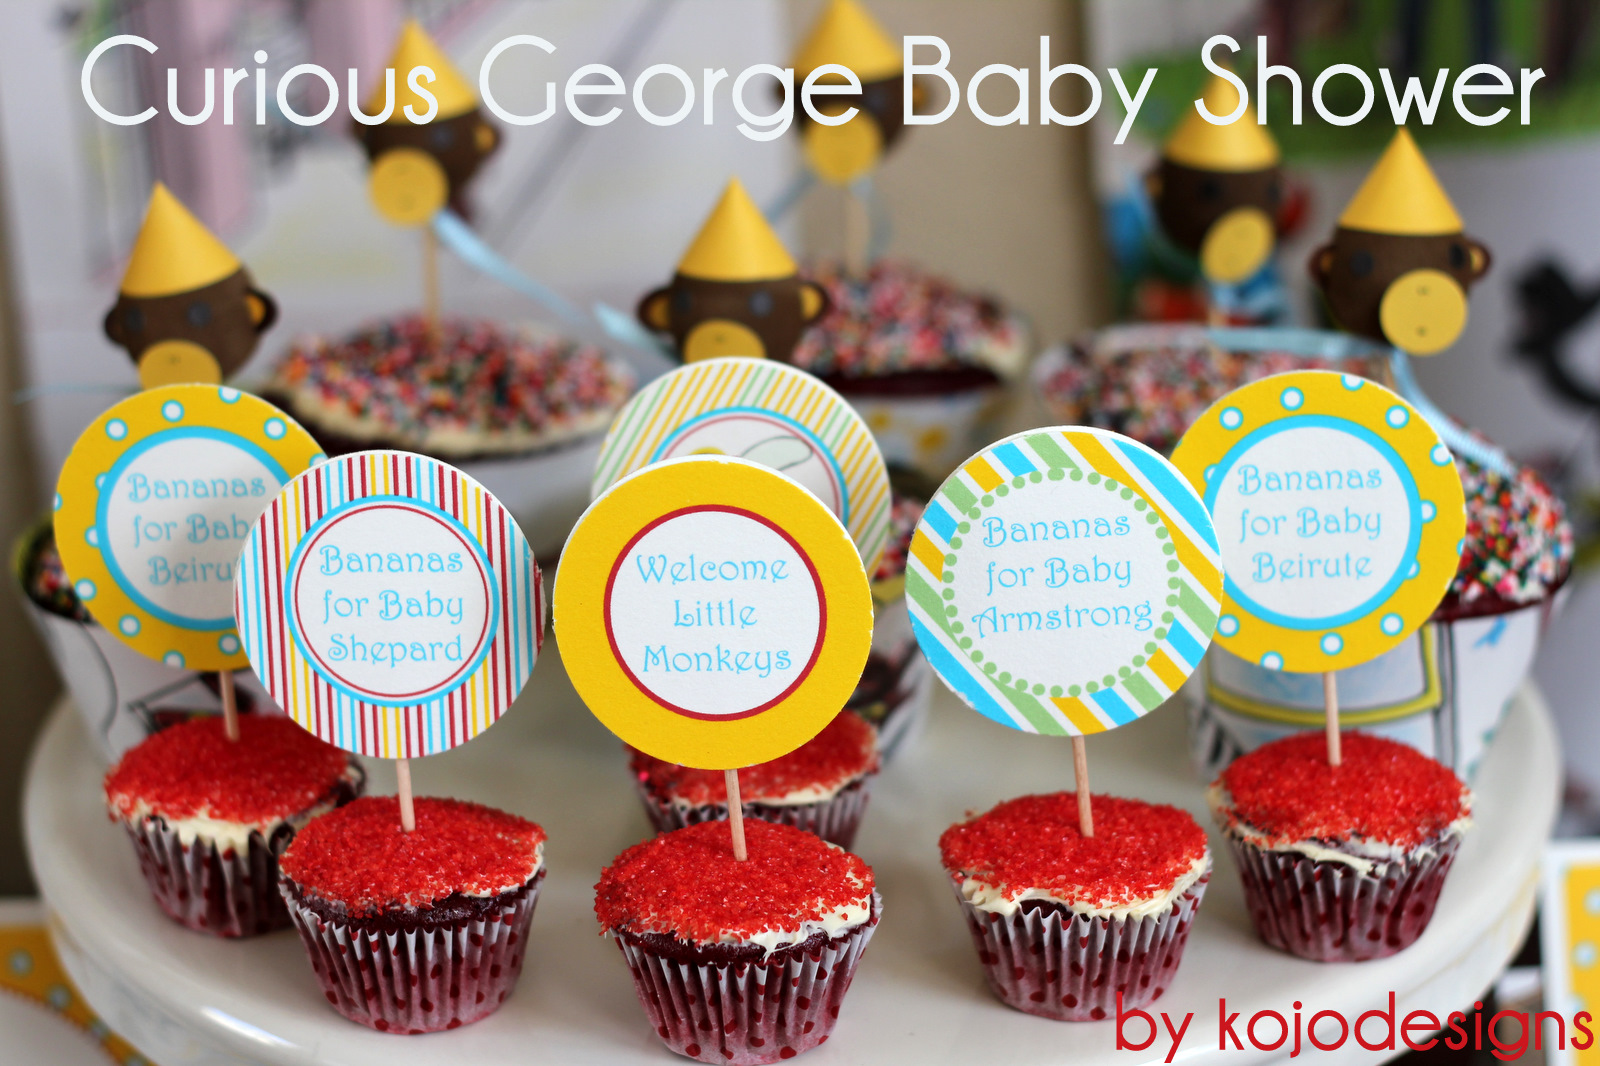 Curious George Baby Shower Theme